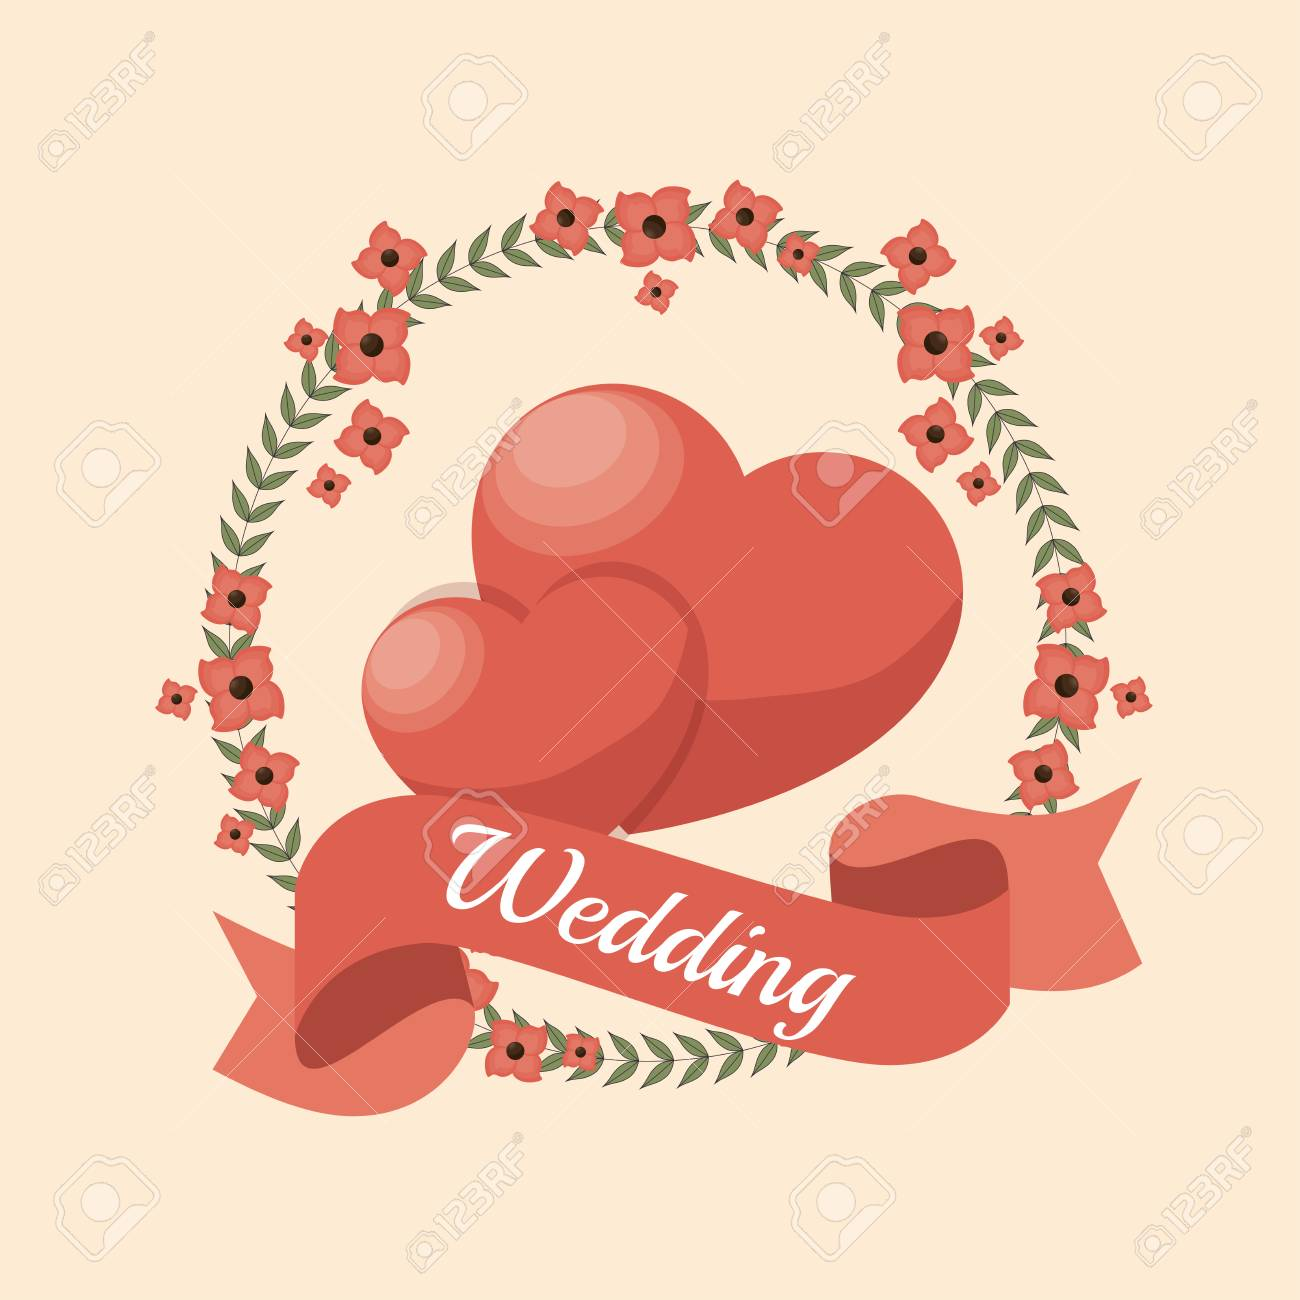 Amazing Wedding Invitation Vector Free Gallery - Invitations and ...